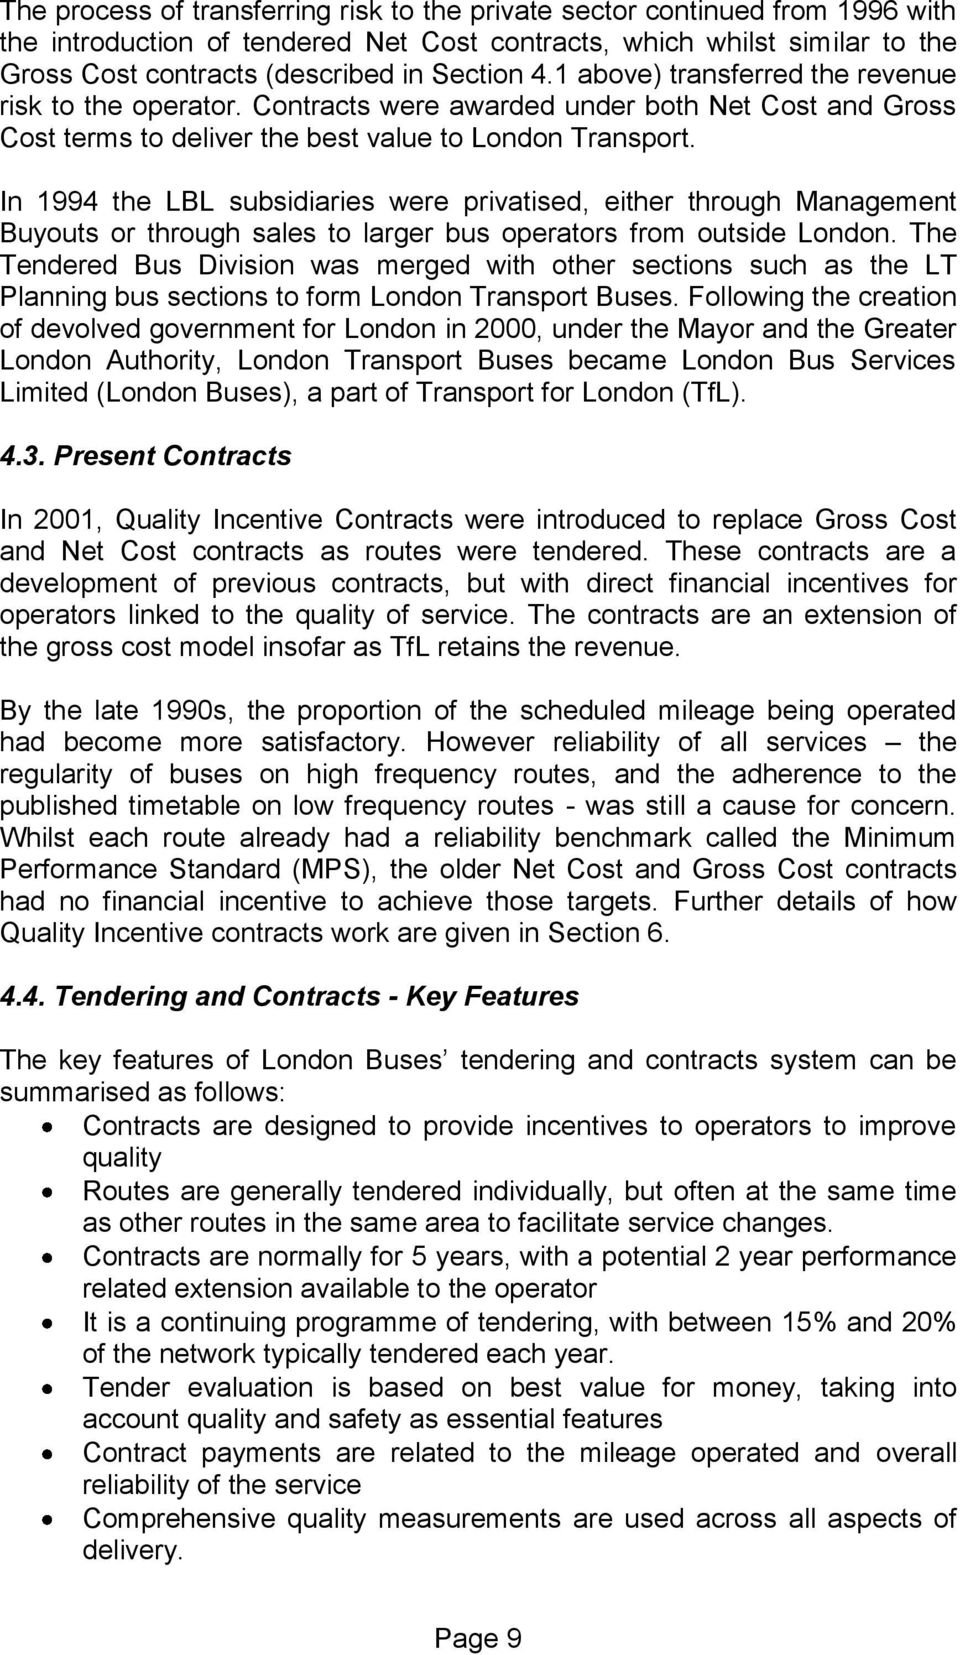 In 1994 the LBL subsidiaries were privatised, either through Management Buyouts or through sales to larger bus operators from outside London.